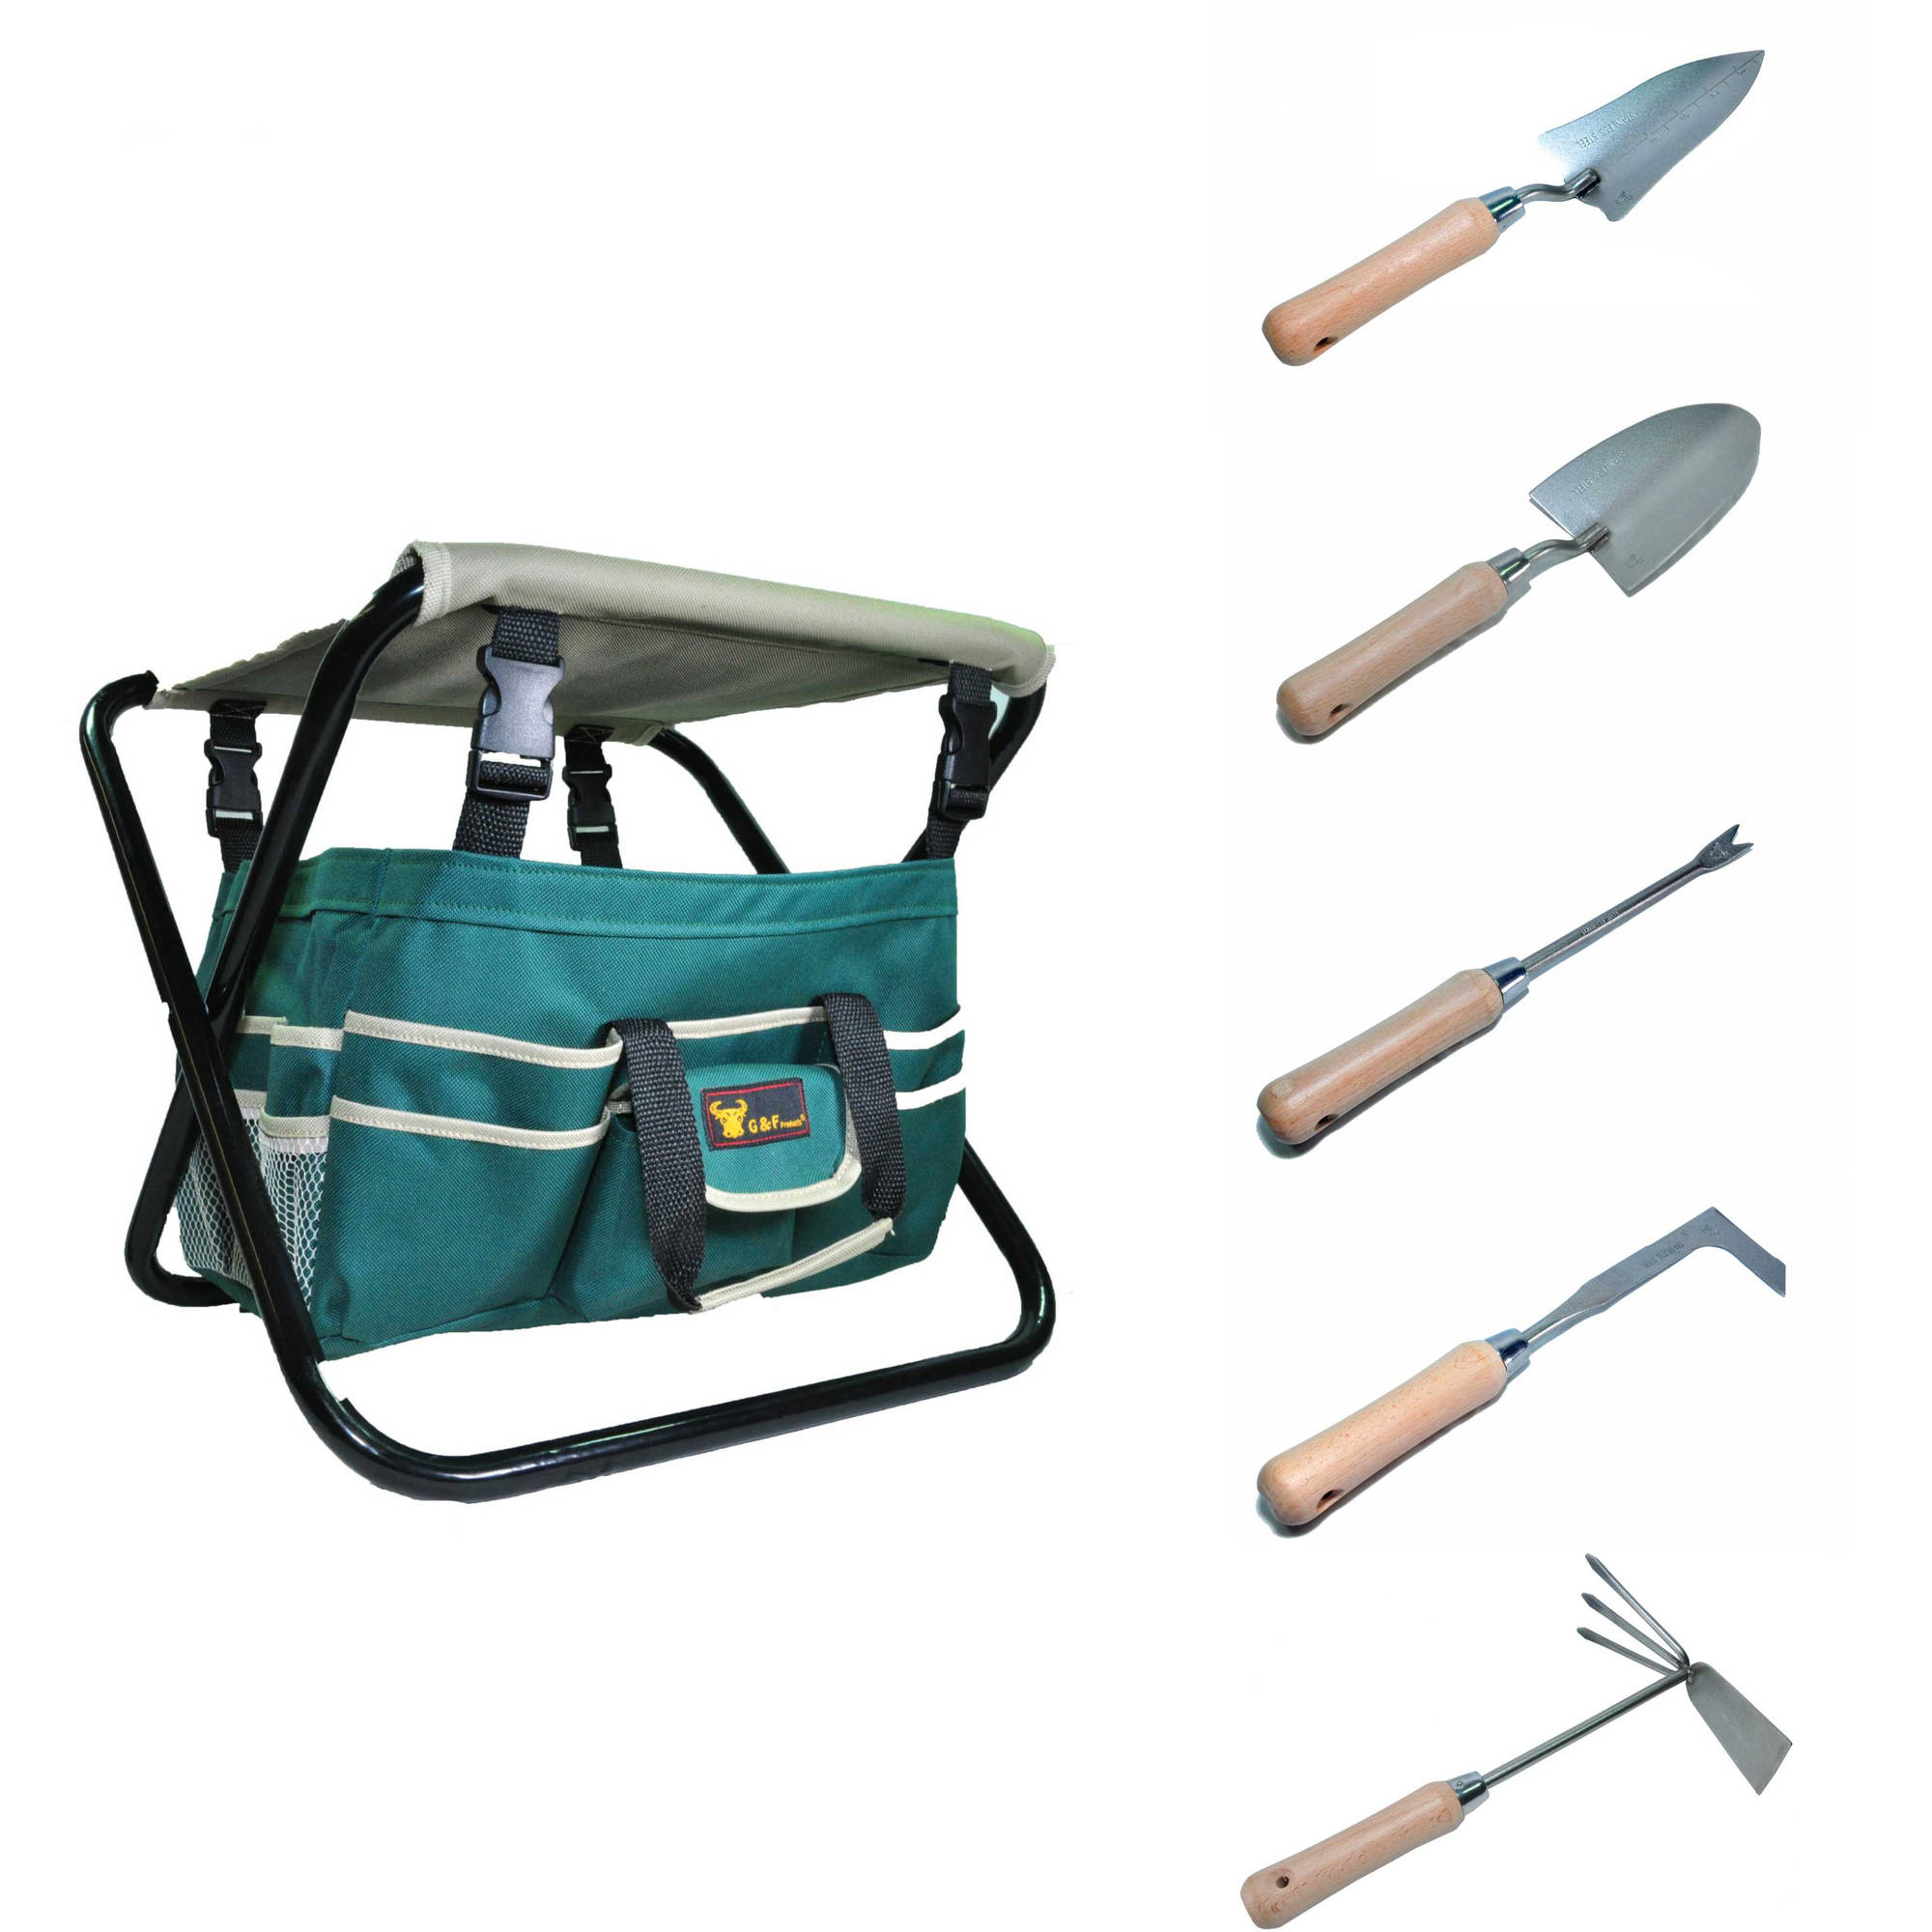 7 piece ergonomic garden tool set includes premium grade for Gardening tools 7 letters